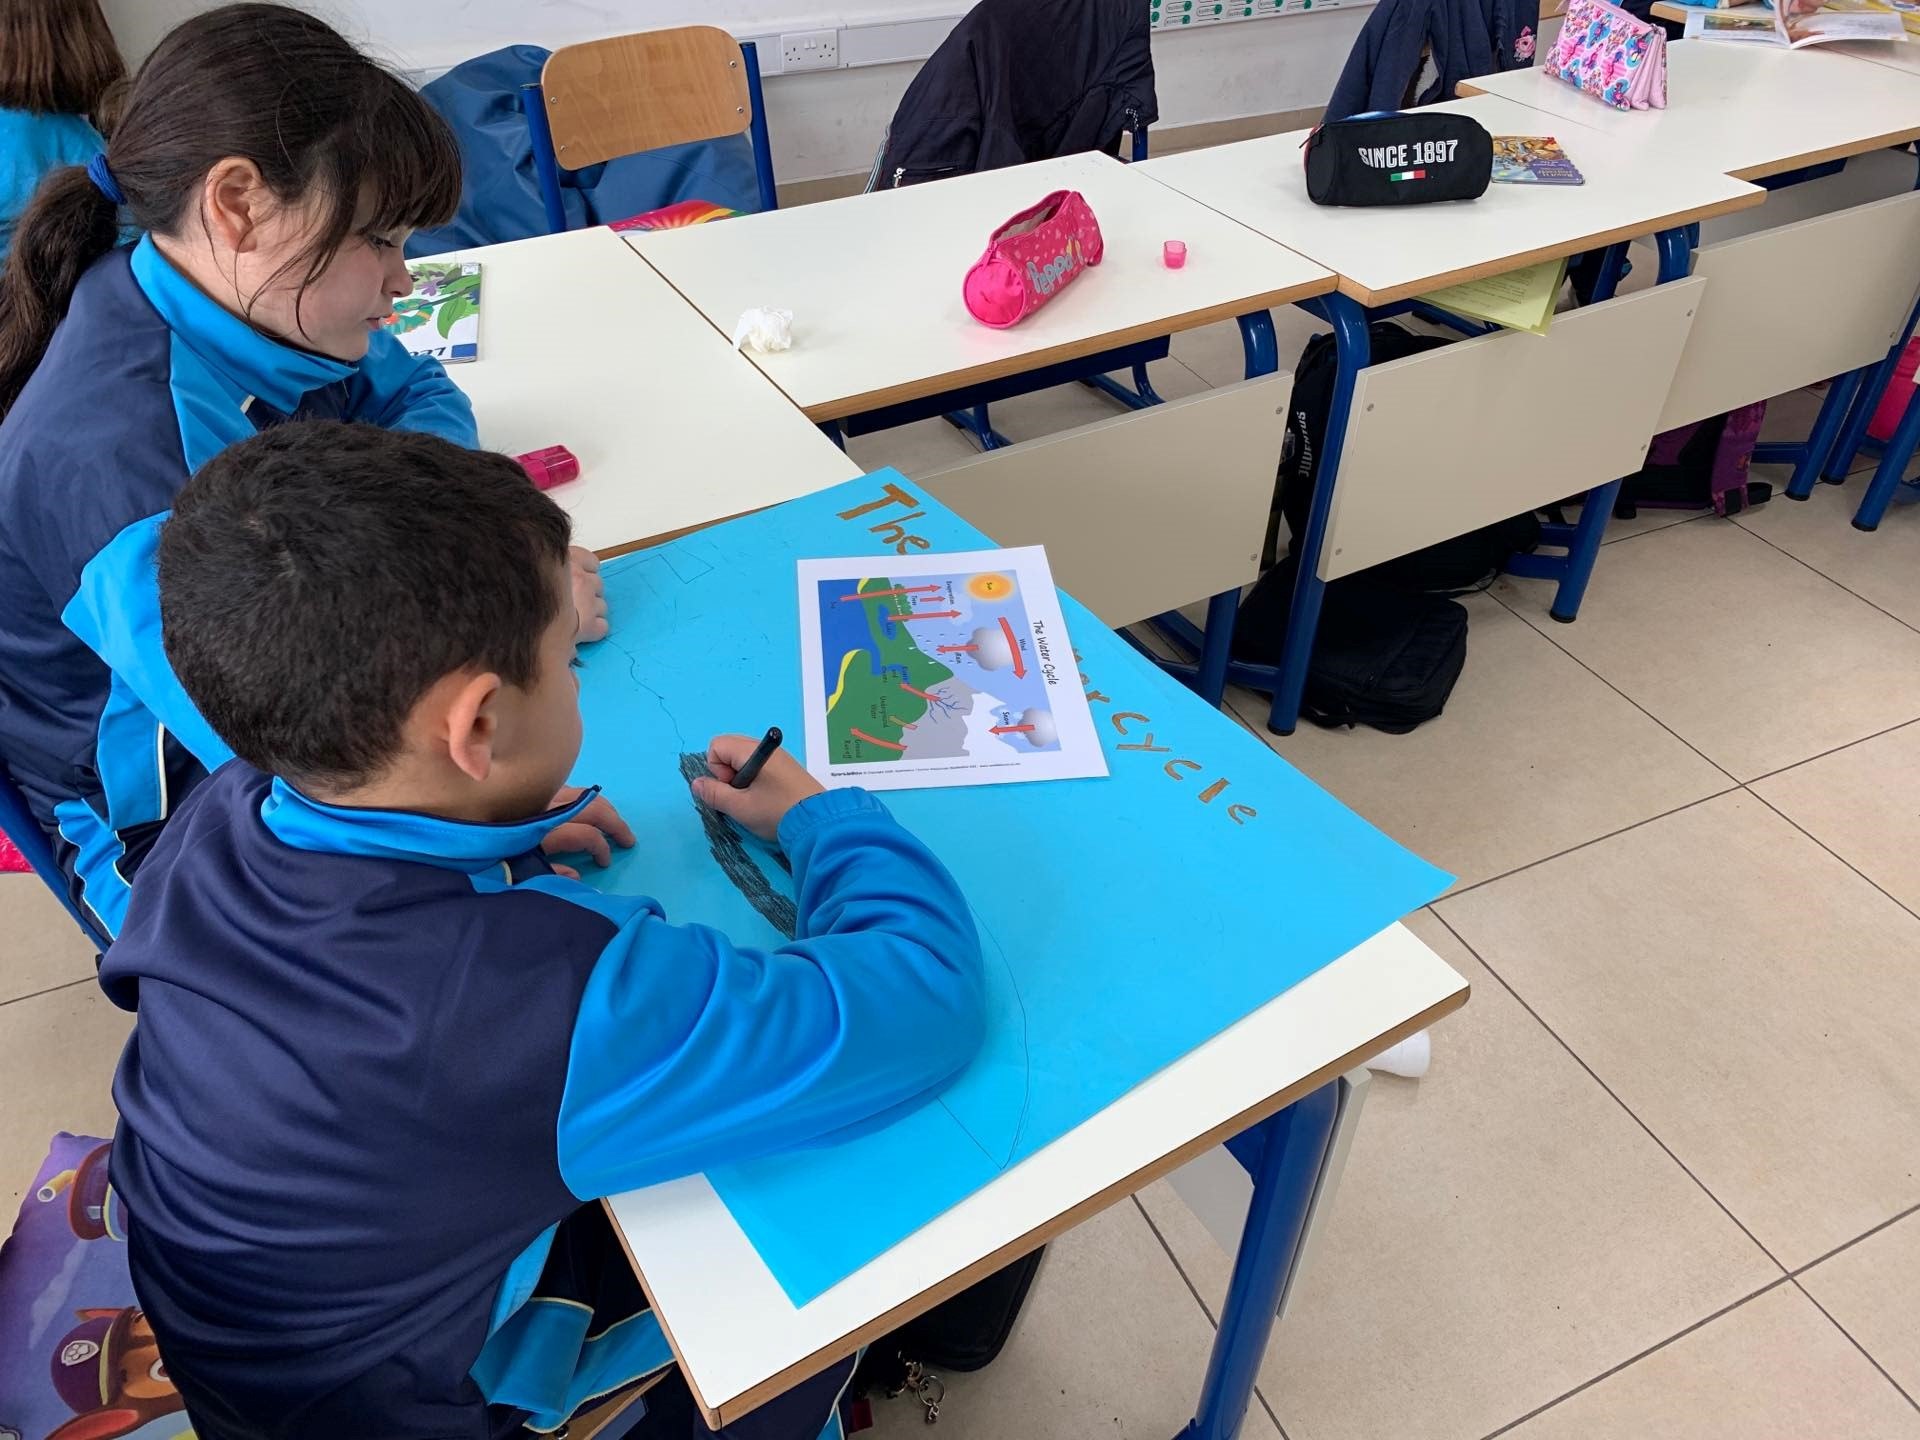 Students, and their work, at the Gozo College Xewkija Primary School (Gozo, Malta)